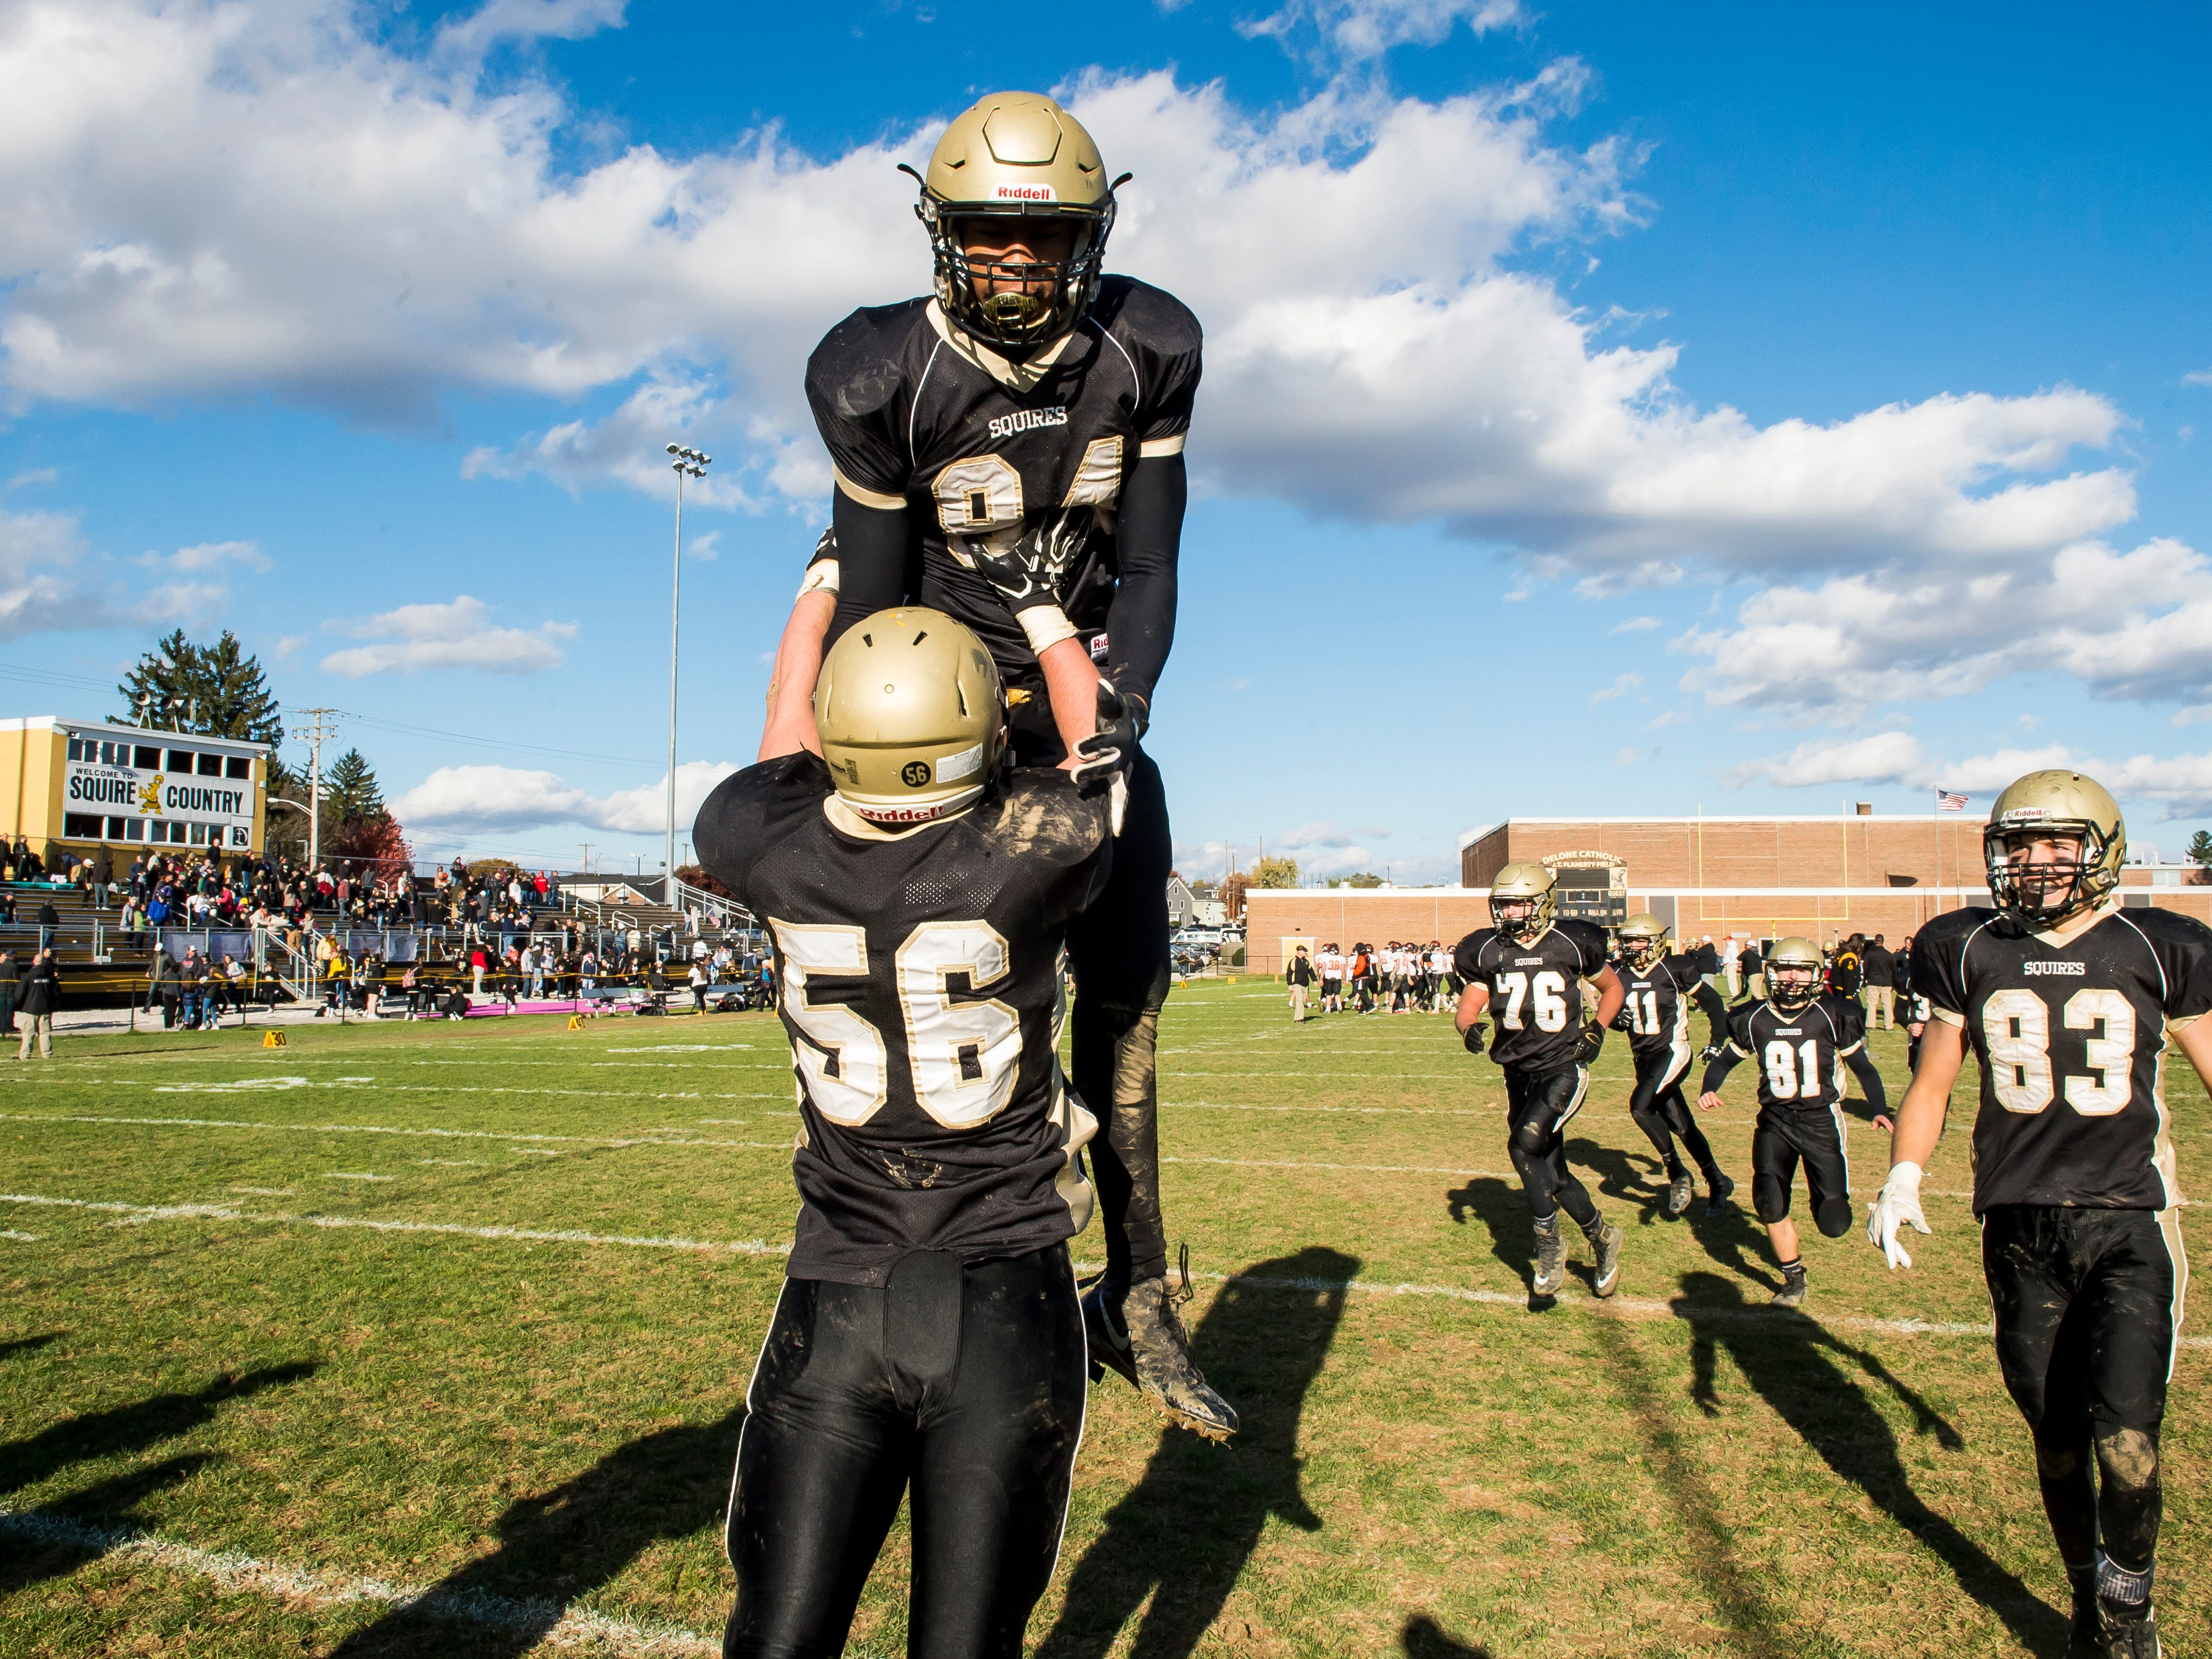 Delone Catholic's Marquis Suite (84) and Sean Kronner (56) celebrate after defeating Upper Dauphin 48-23 in a District III Class 2A semifinal game on Saturday, November 3, 2018. The Squires will play in the District title game against York Catholic on Friday.